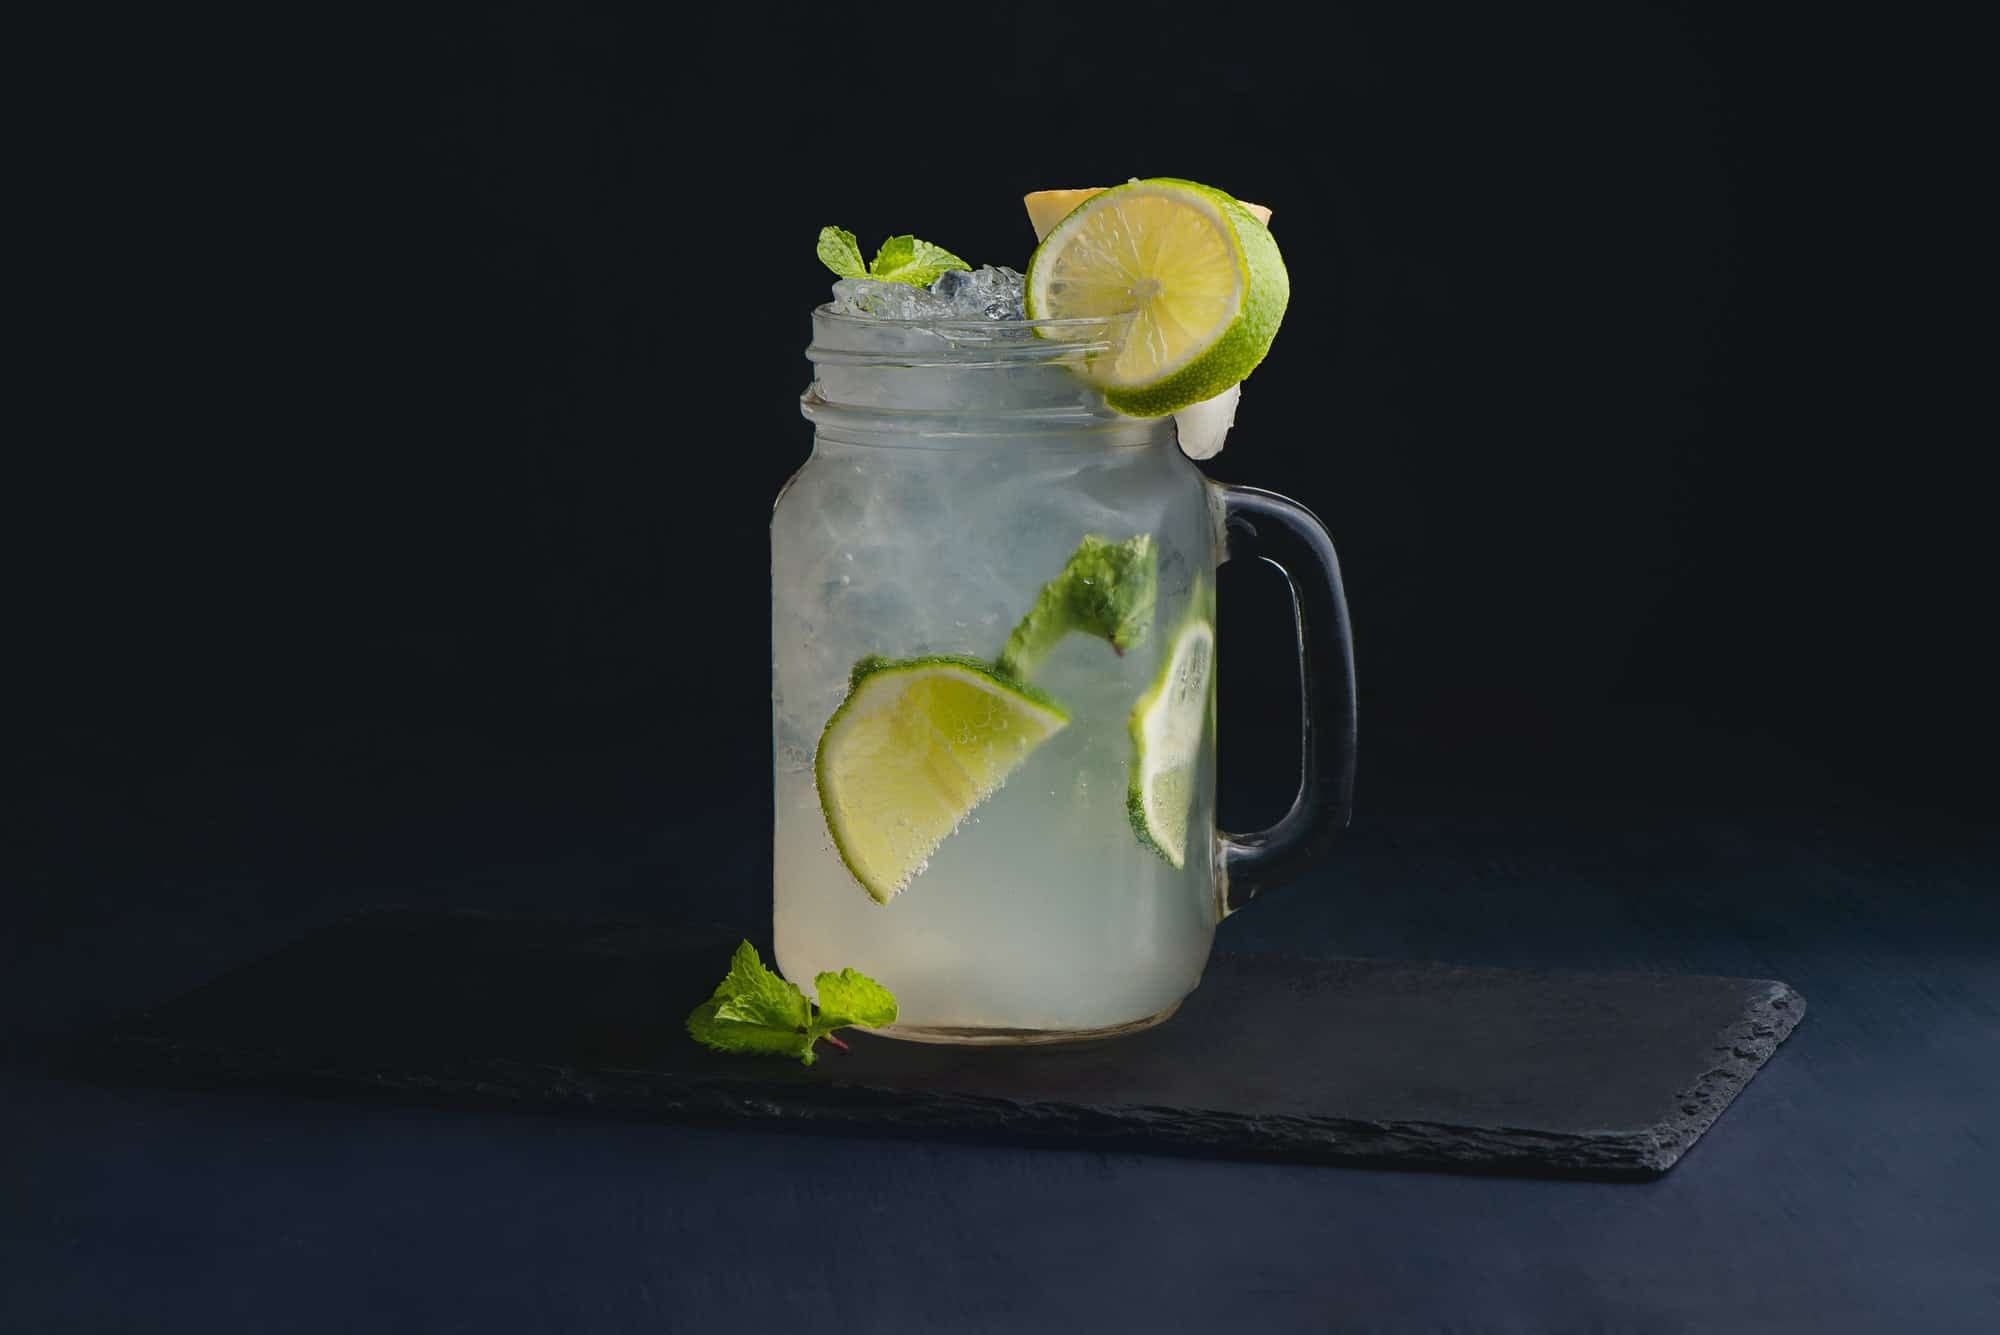 Ice cold classic lime lemonade in a vintage glass mason jar. Dark background with copy space for a